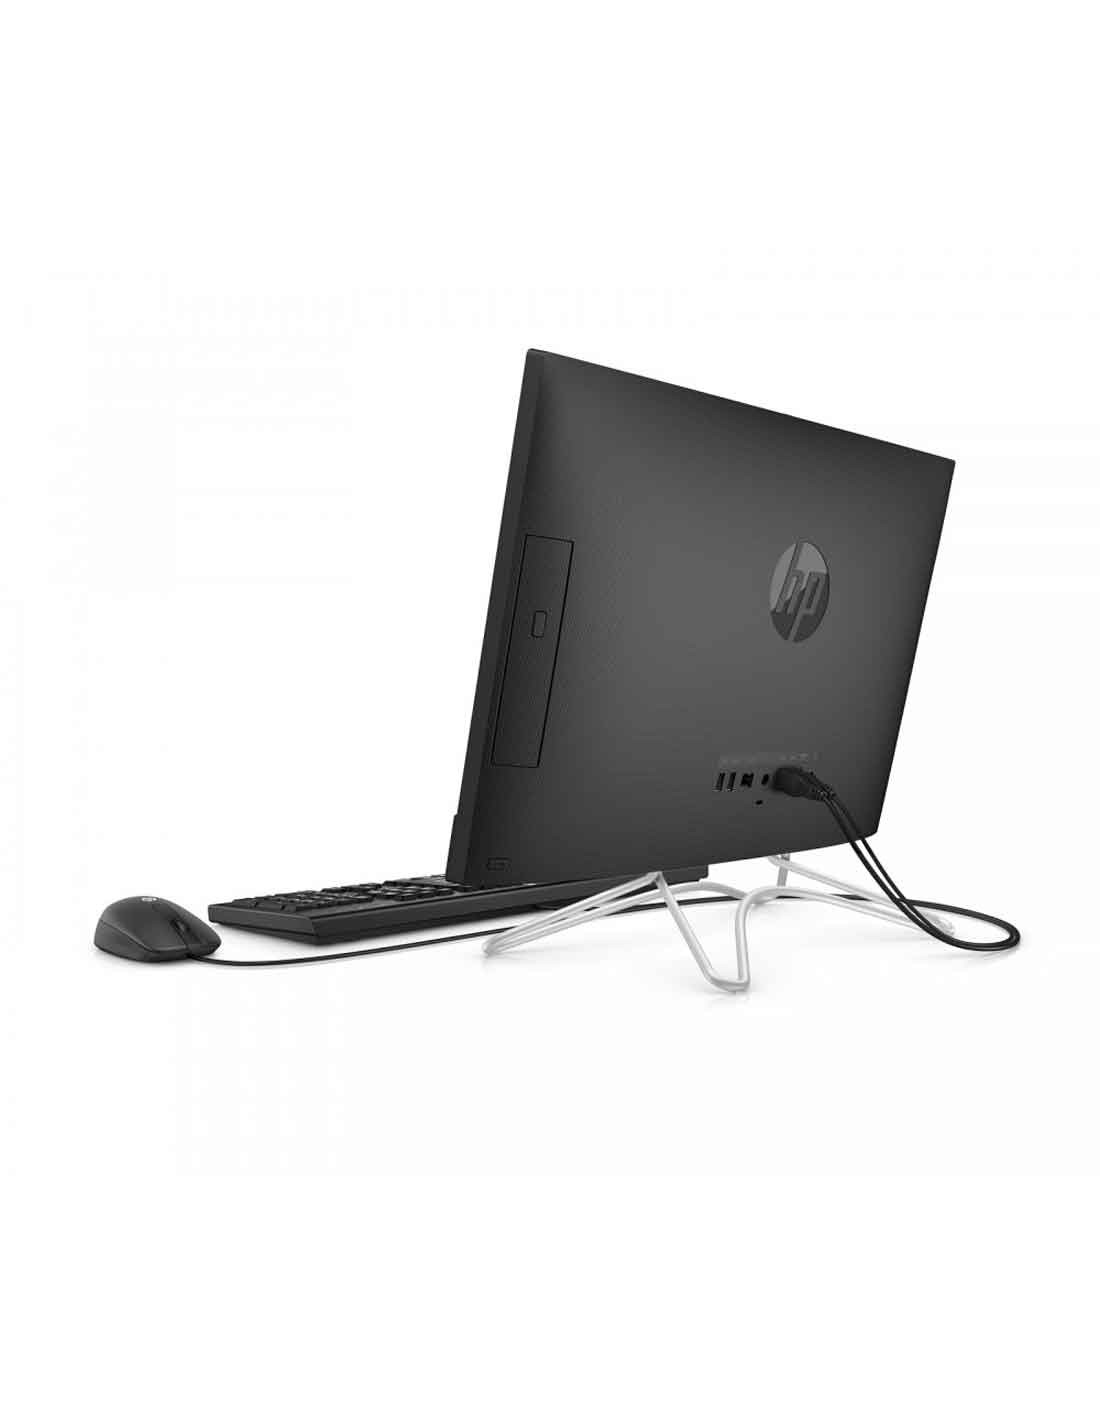 HP ProOne 200 G3 All-in-One Dubai Online Store